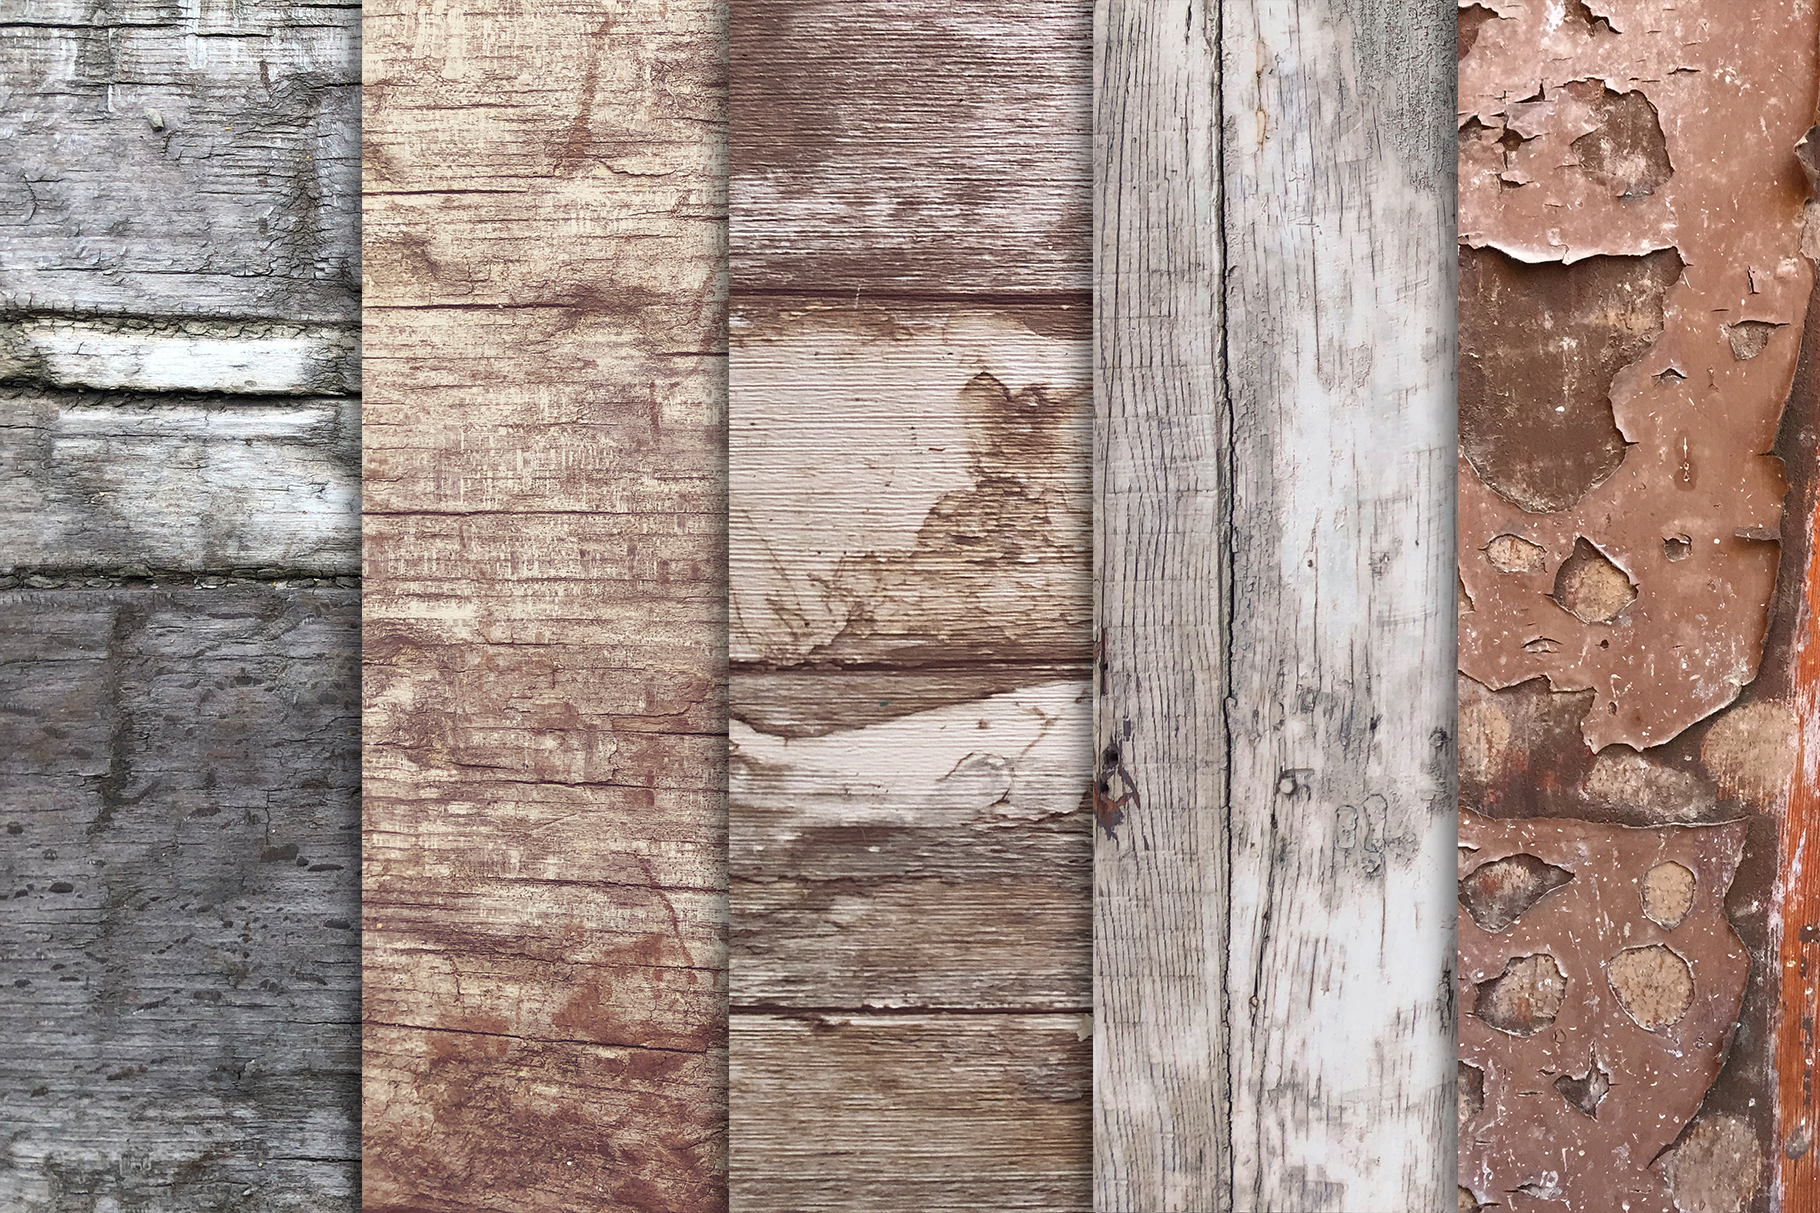 Grunge Wood Textures x10 example image 4